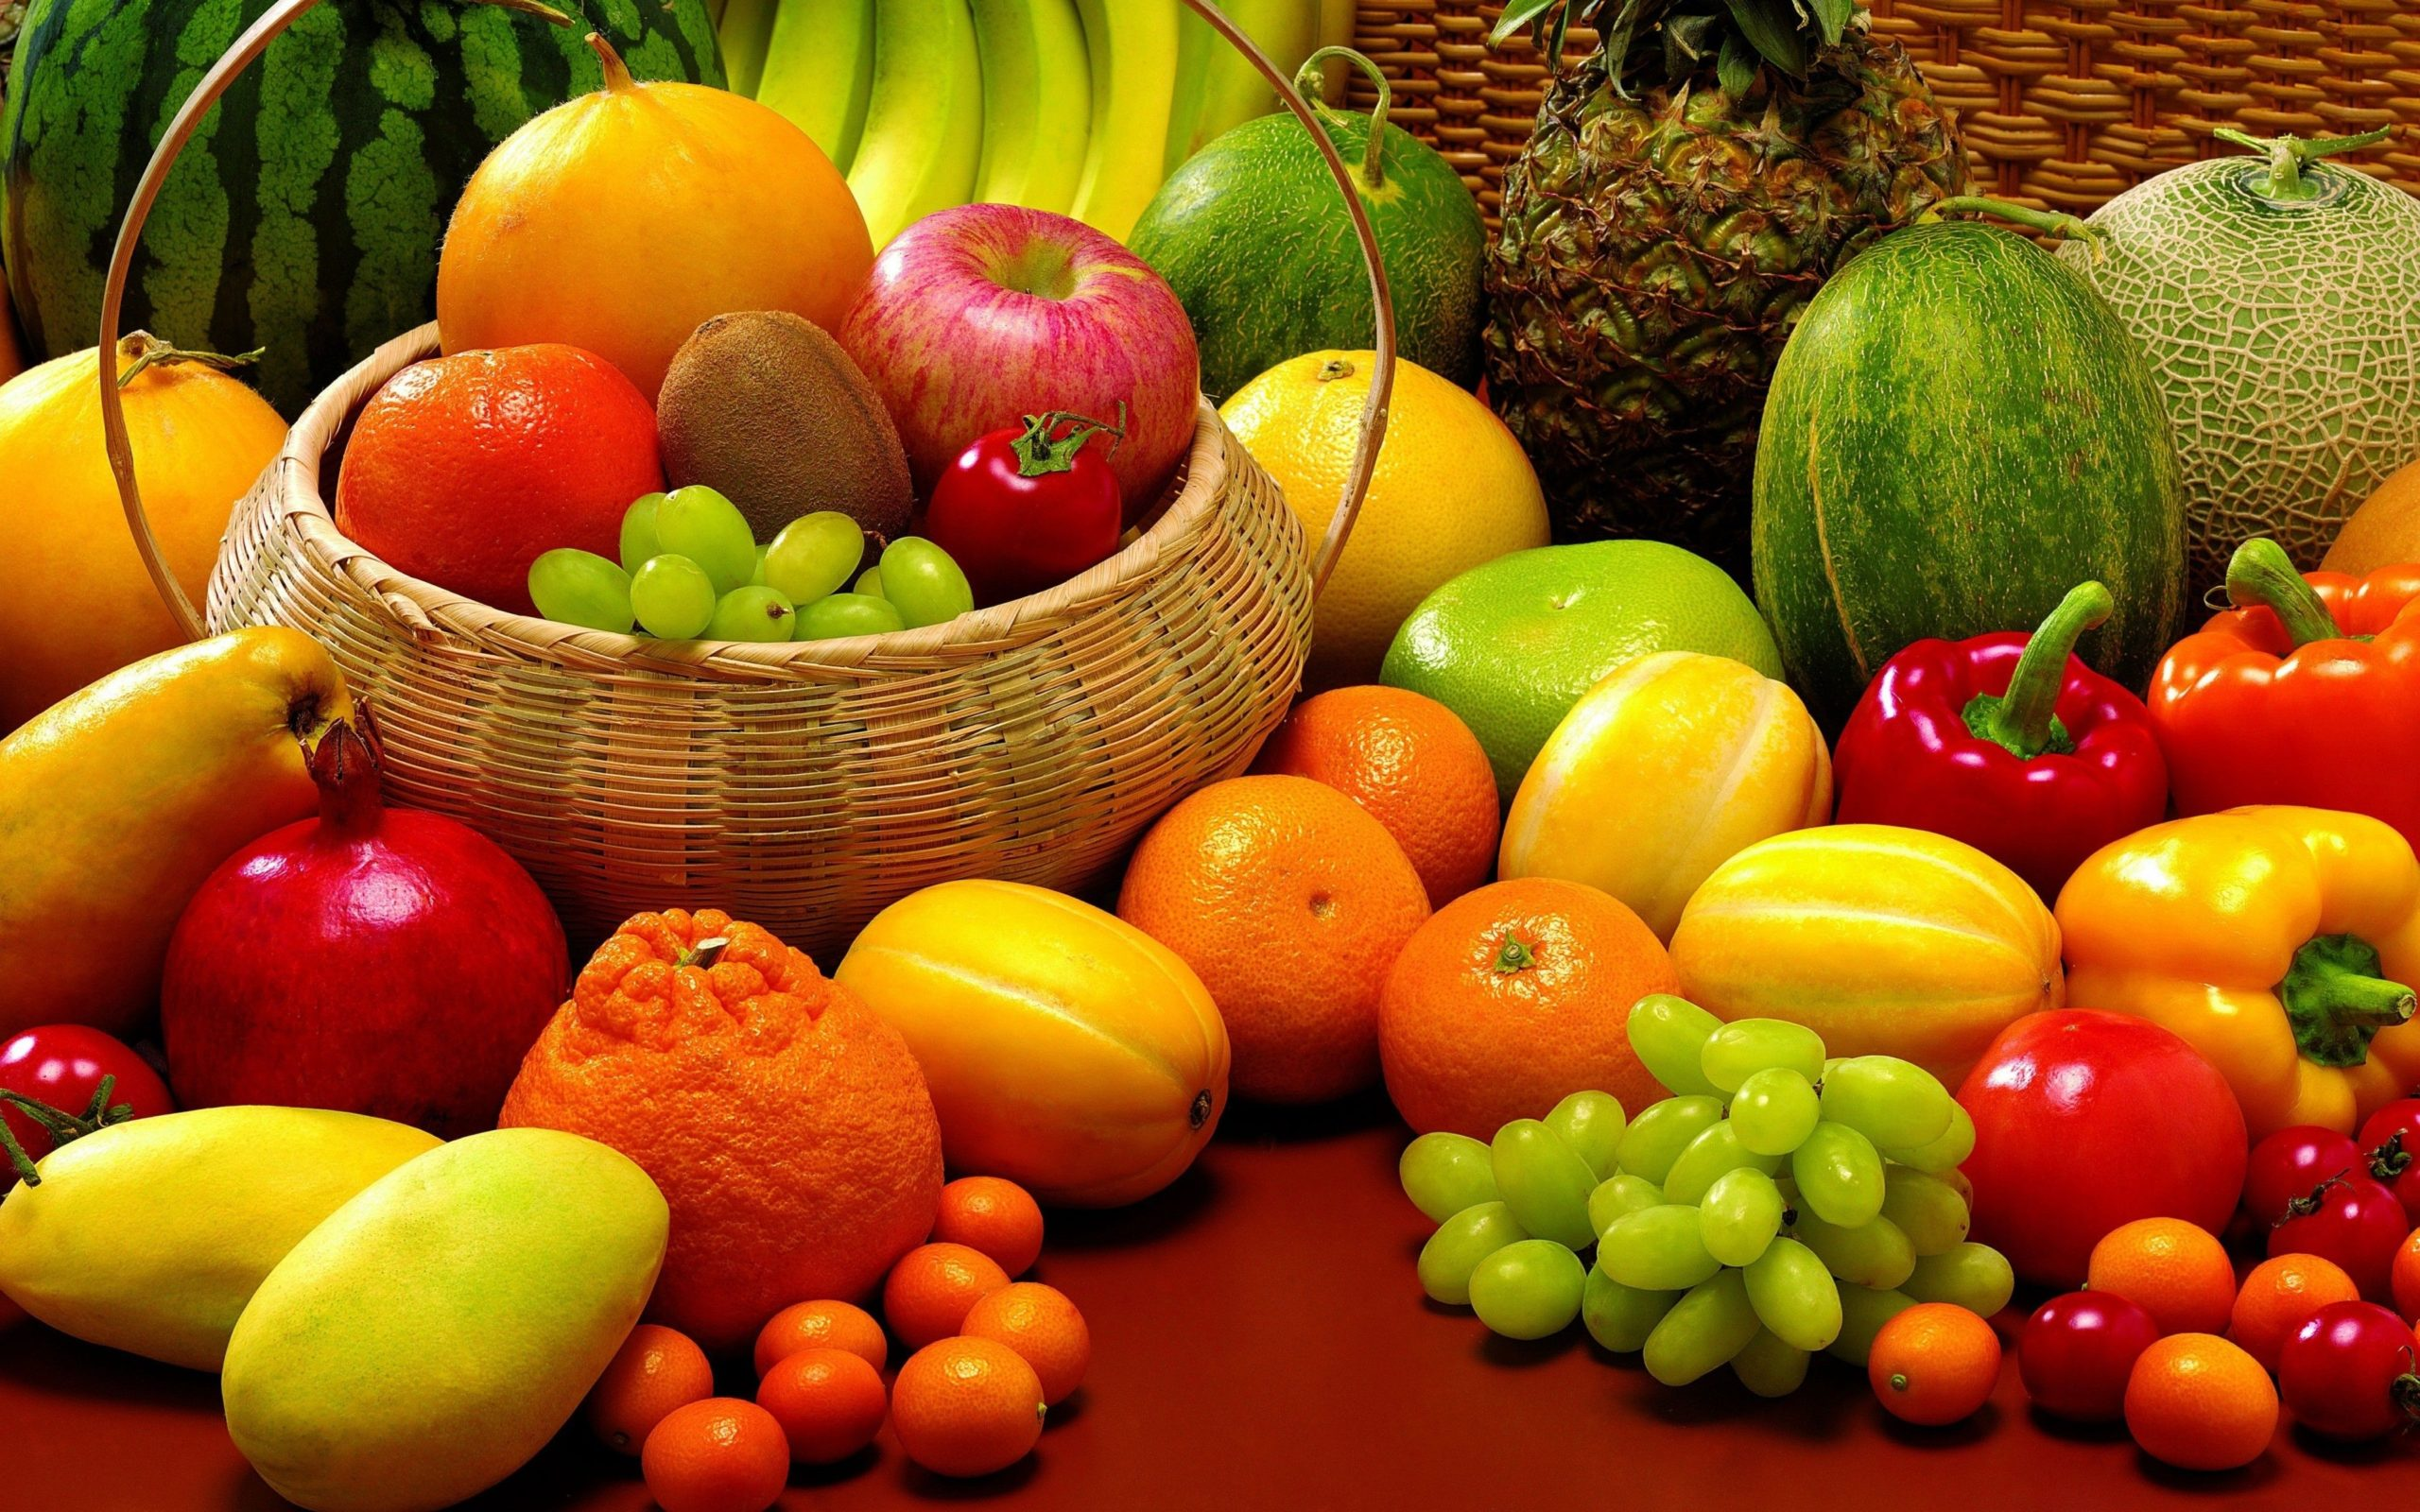 fruits background hd